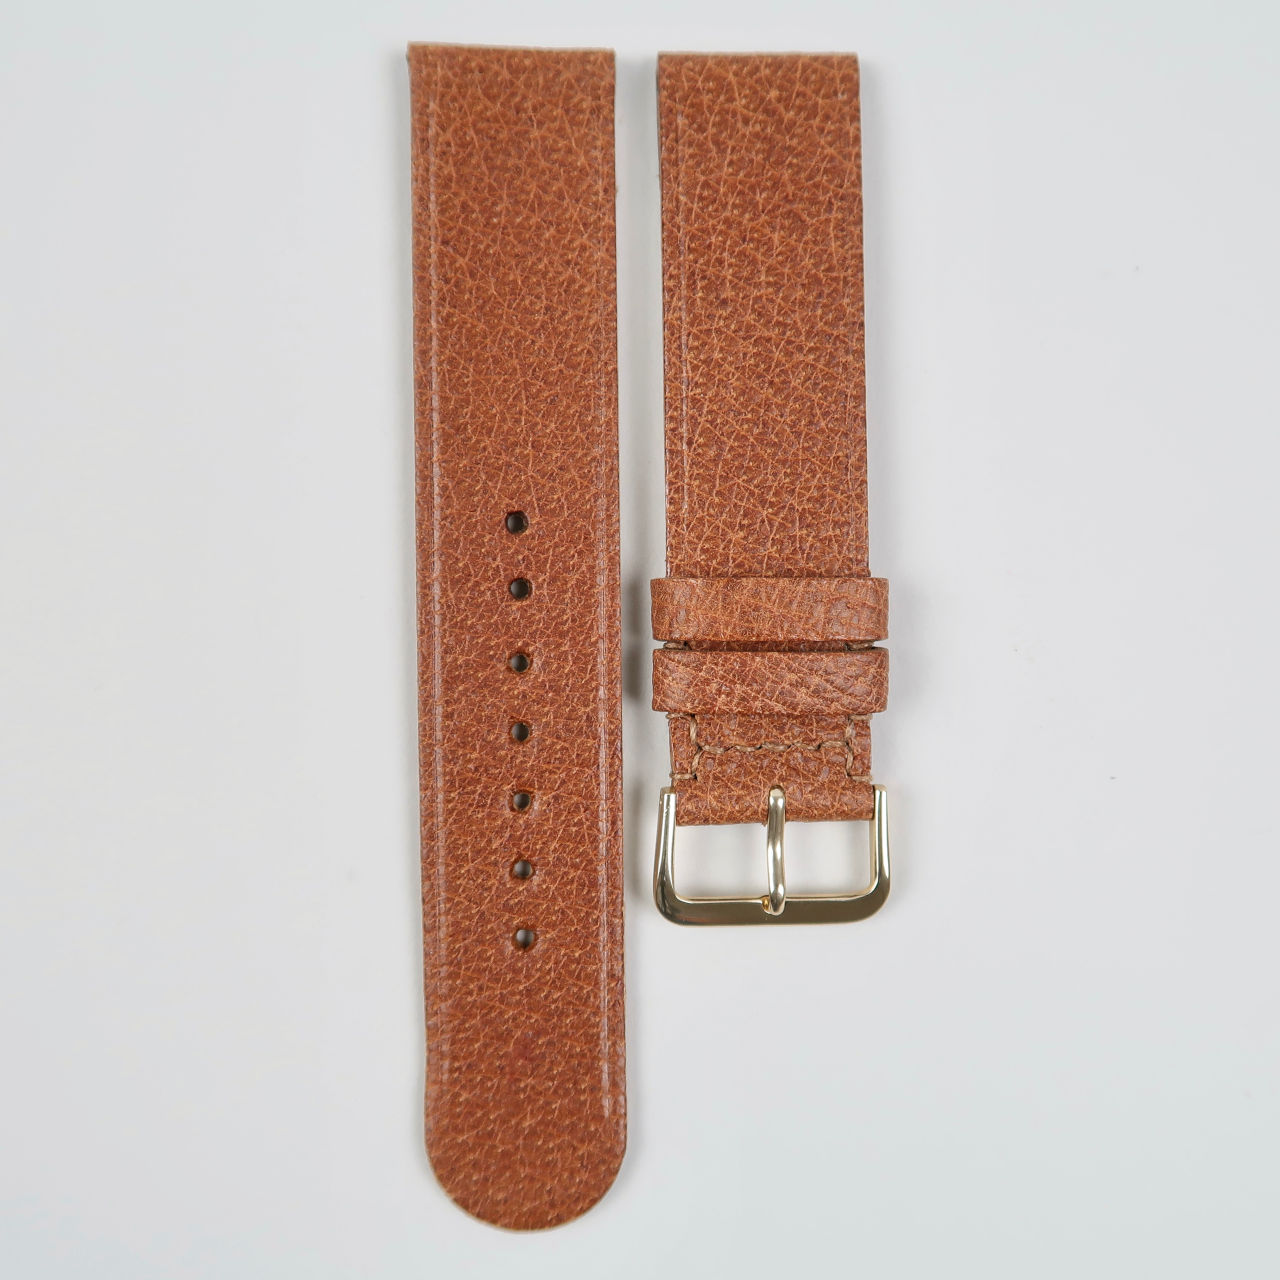 Christopher Clarke for Black Bough No.6 handmade pig skin leather watch strap